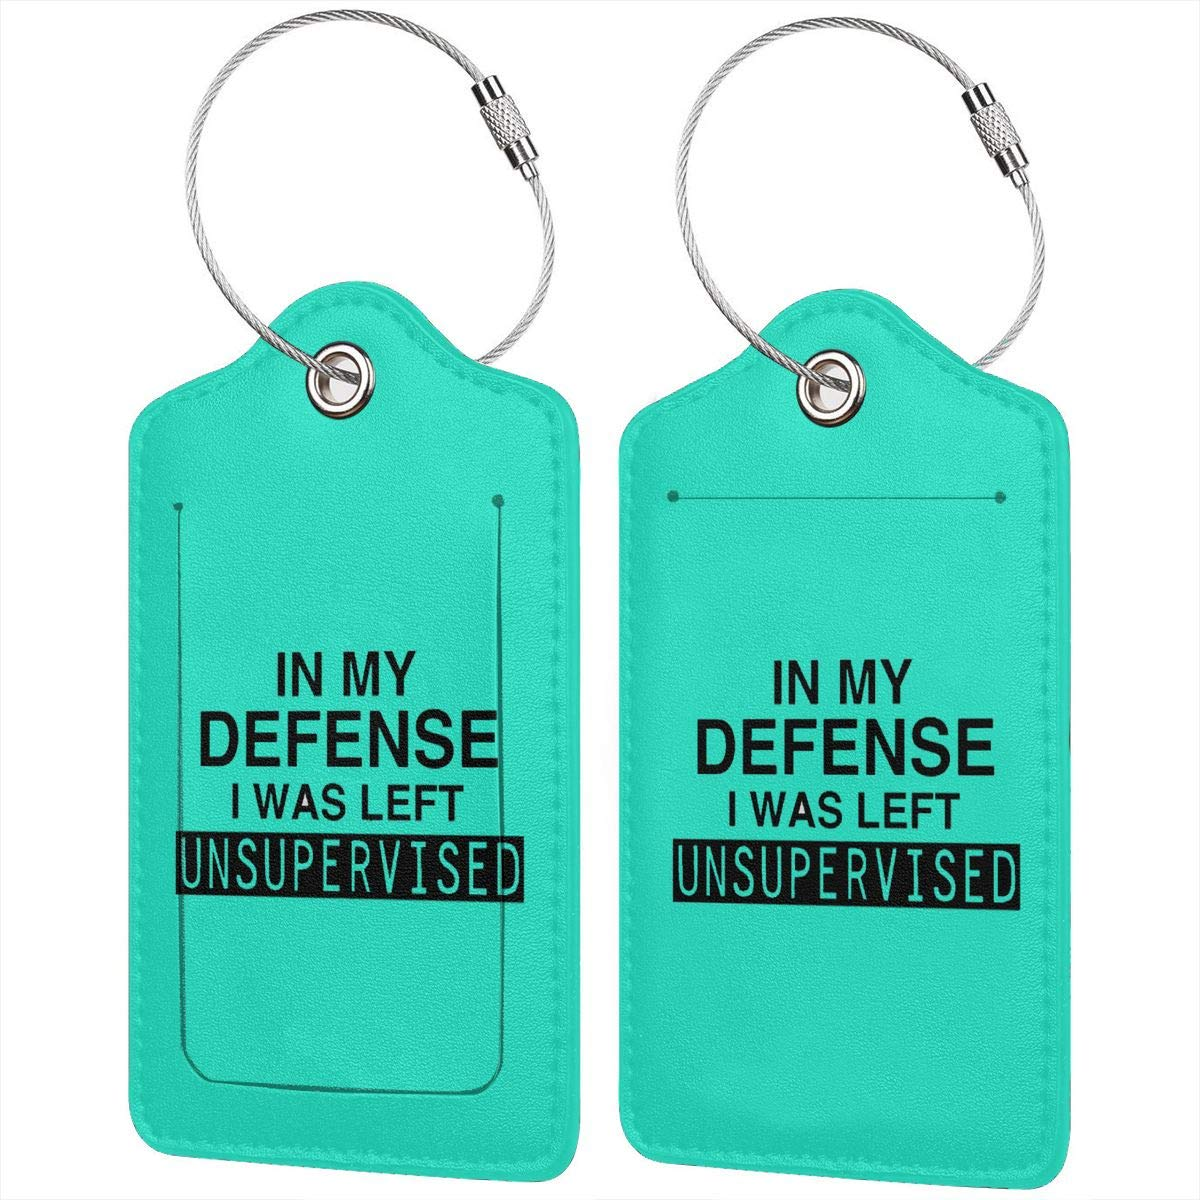 In My Defense I Was Left Unsupervised Leather Luggage Tags Suitcase Tag Travel Bag Labels With Privacy Cover For Men Women 2 Pack 4 Pack